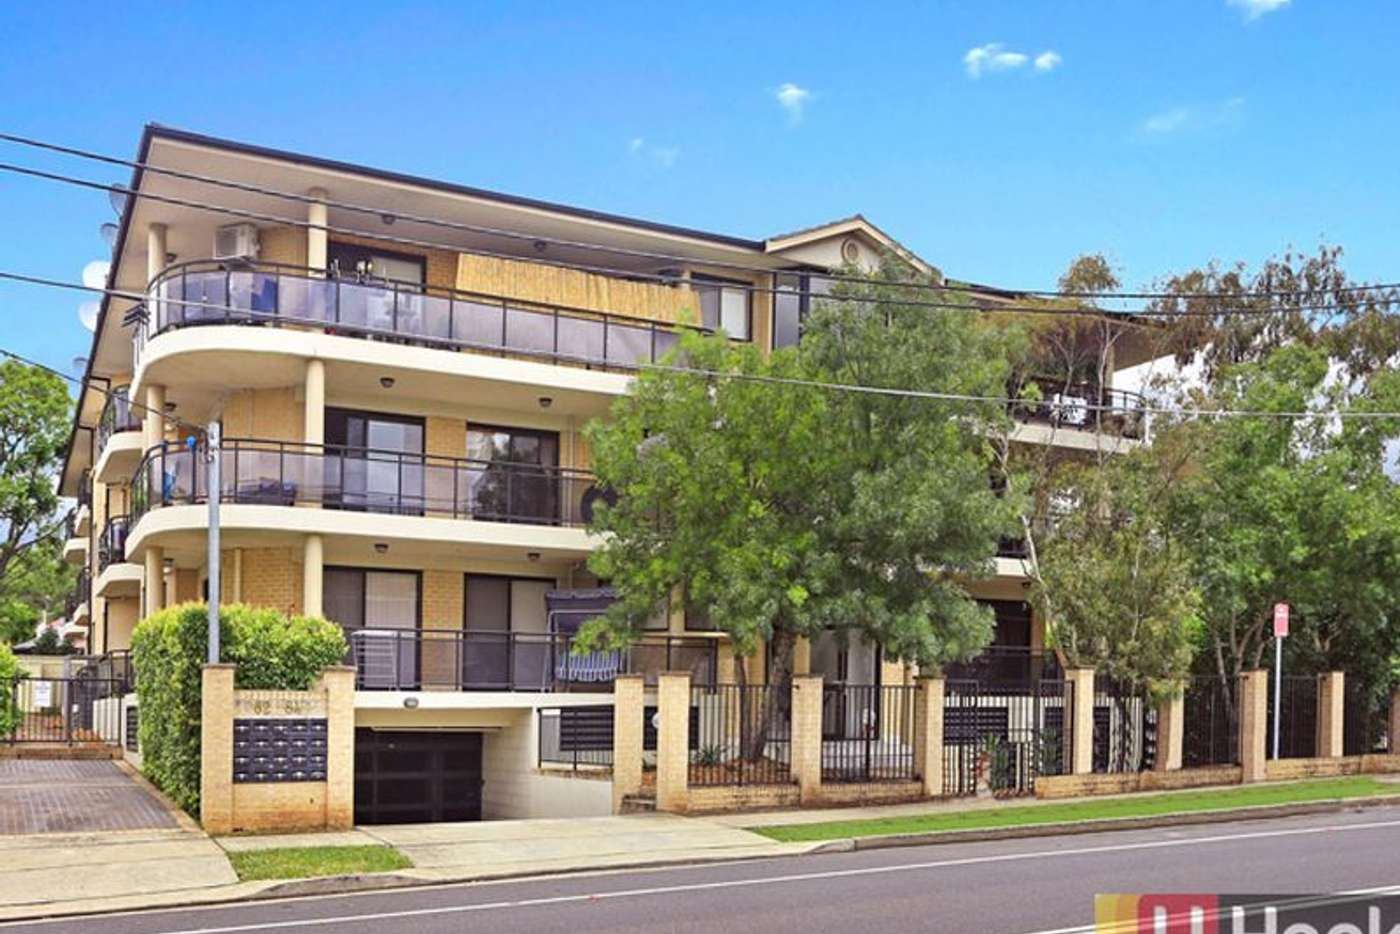 Main view of Homely apartment listing, 3/82-84 Beaconsfield St, Silverwater NSW 2128